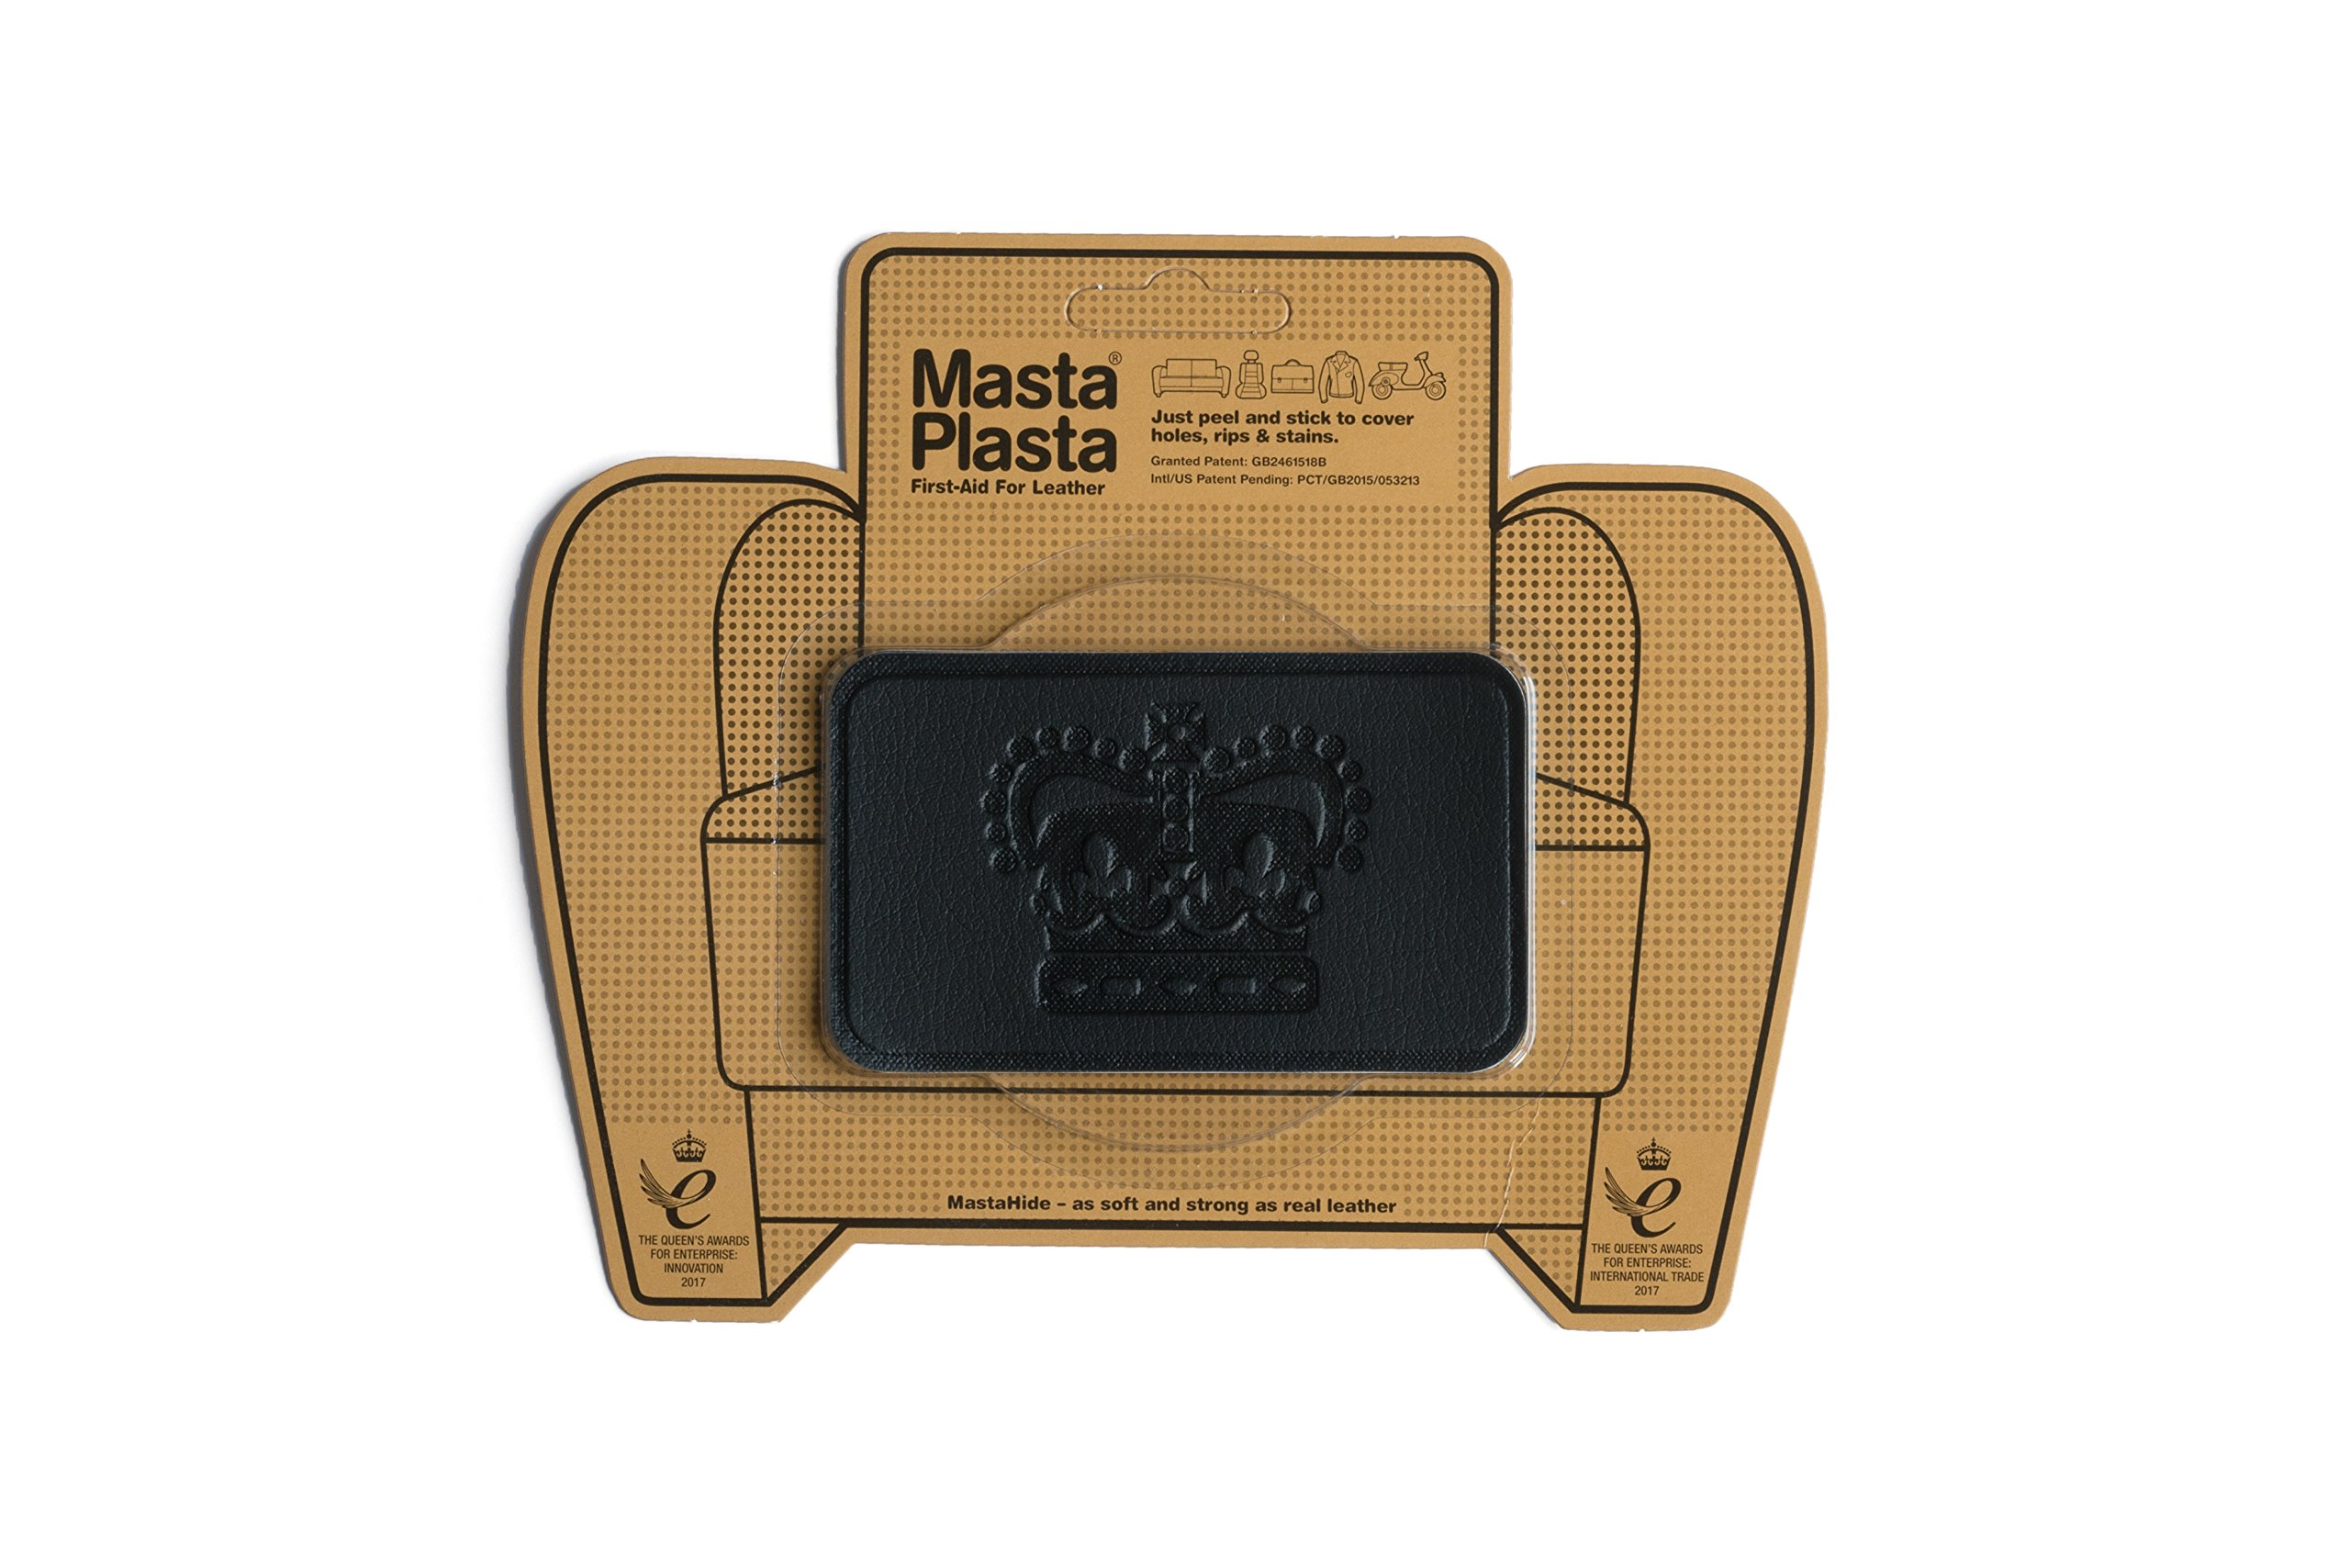 MastaPlasta, Leather Repair Patch, First-aid for Sofas, Car Seats, Handbags, Jackets, etc. Black Color, Crown 4-inch by 2.4-inch, Designs Vary